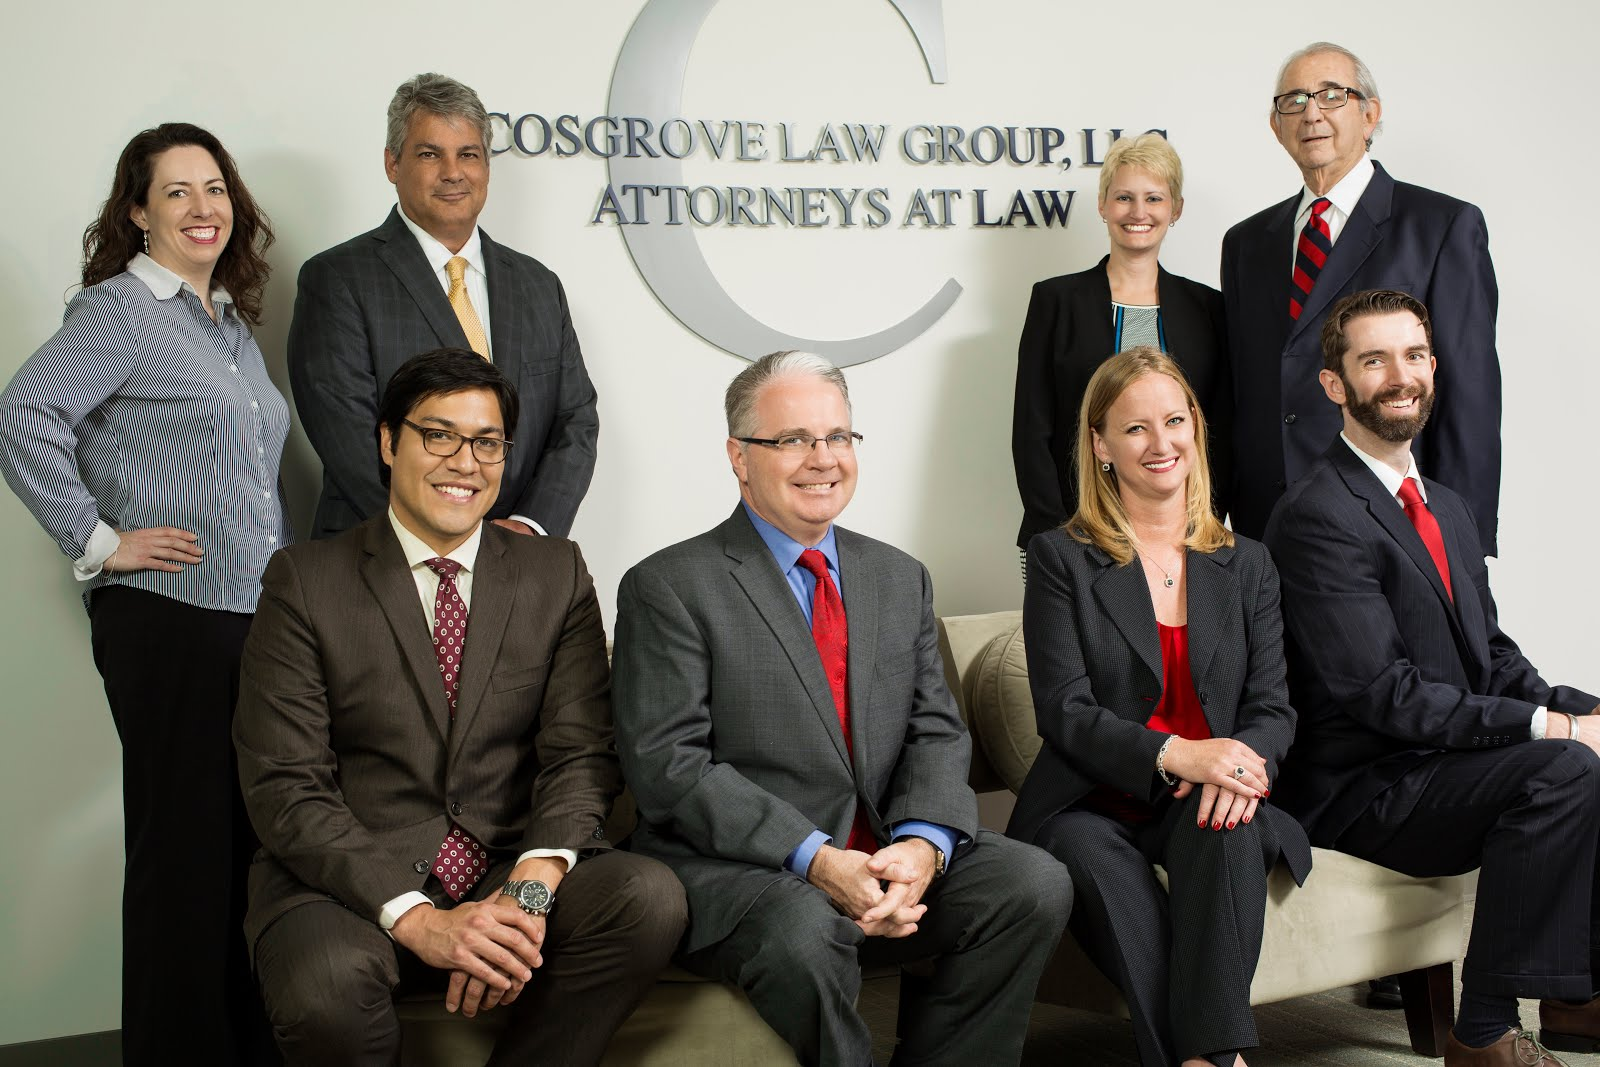 Cosgrove Law Group, LLC